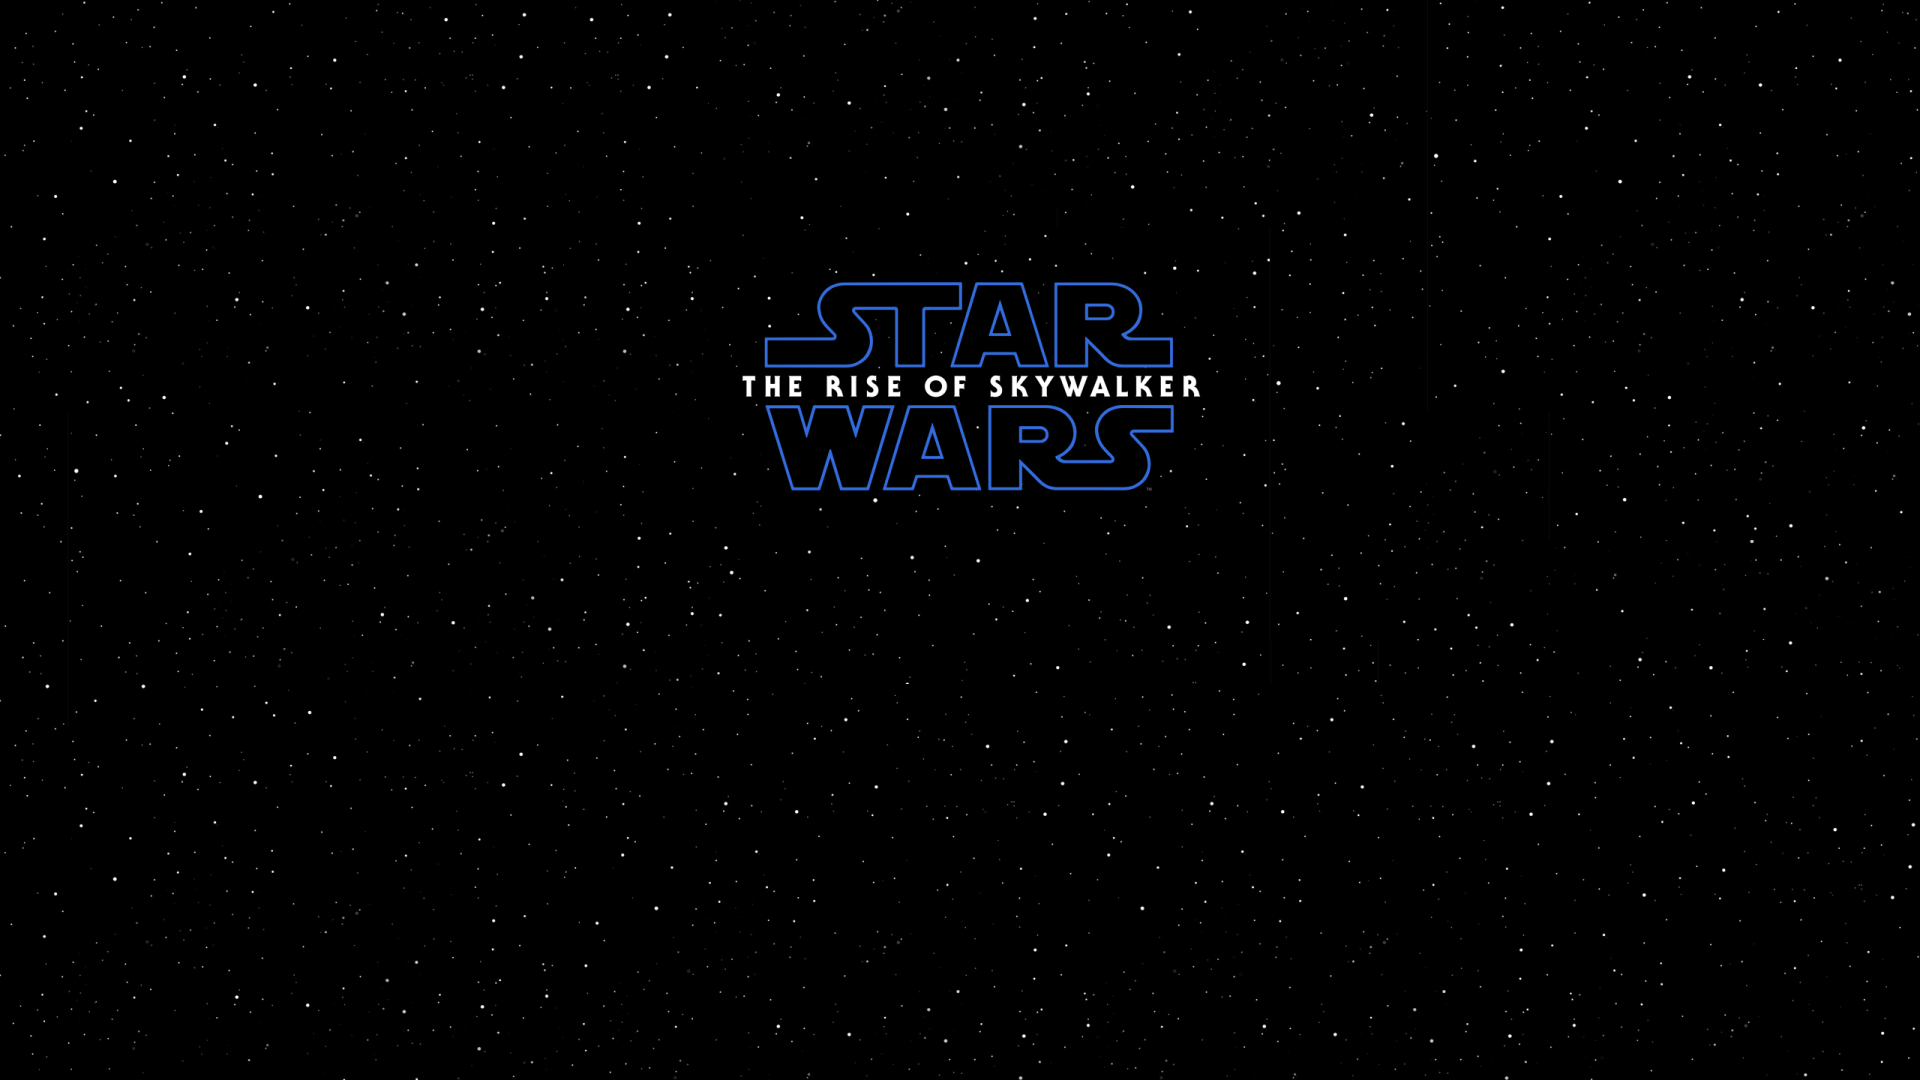 1920x1080 Star Wars The Rise Of Skywalker Poster 1080p Laptop Full Hd Wallpaper Hd Movies 4k Wallpapers Images Photos And Background